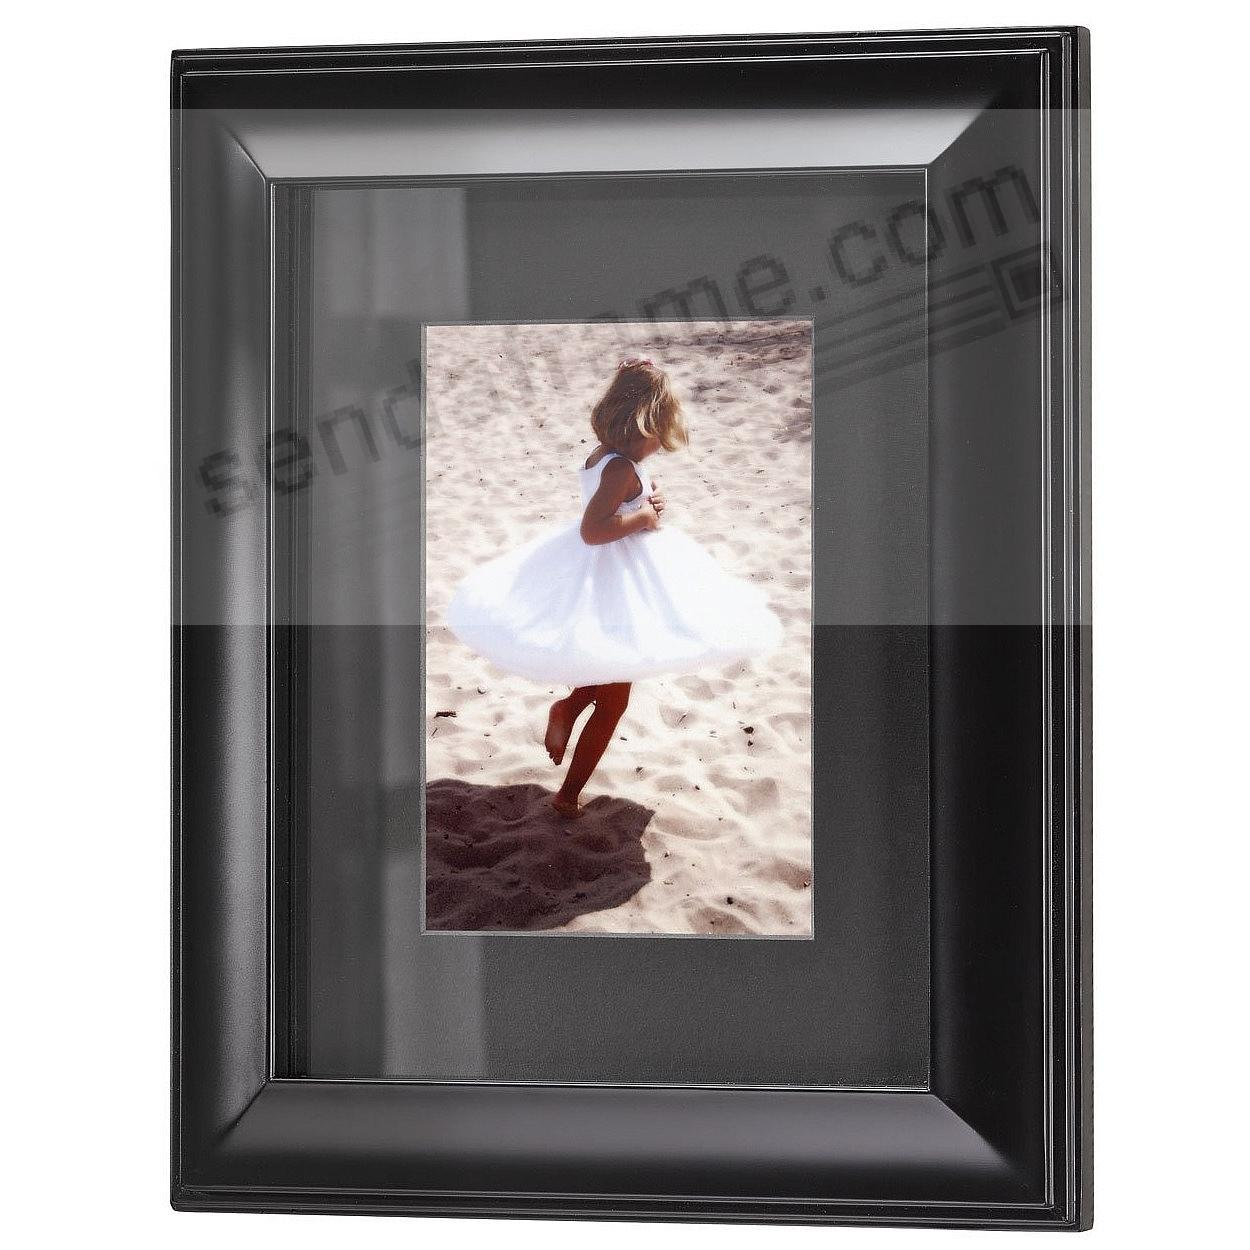 HUDSON Black-Matted Ebony-Black Wood frame 8x10/5x7 from ARTCARE® by Nielsen®